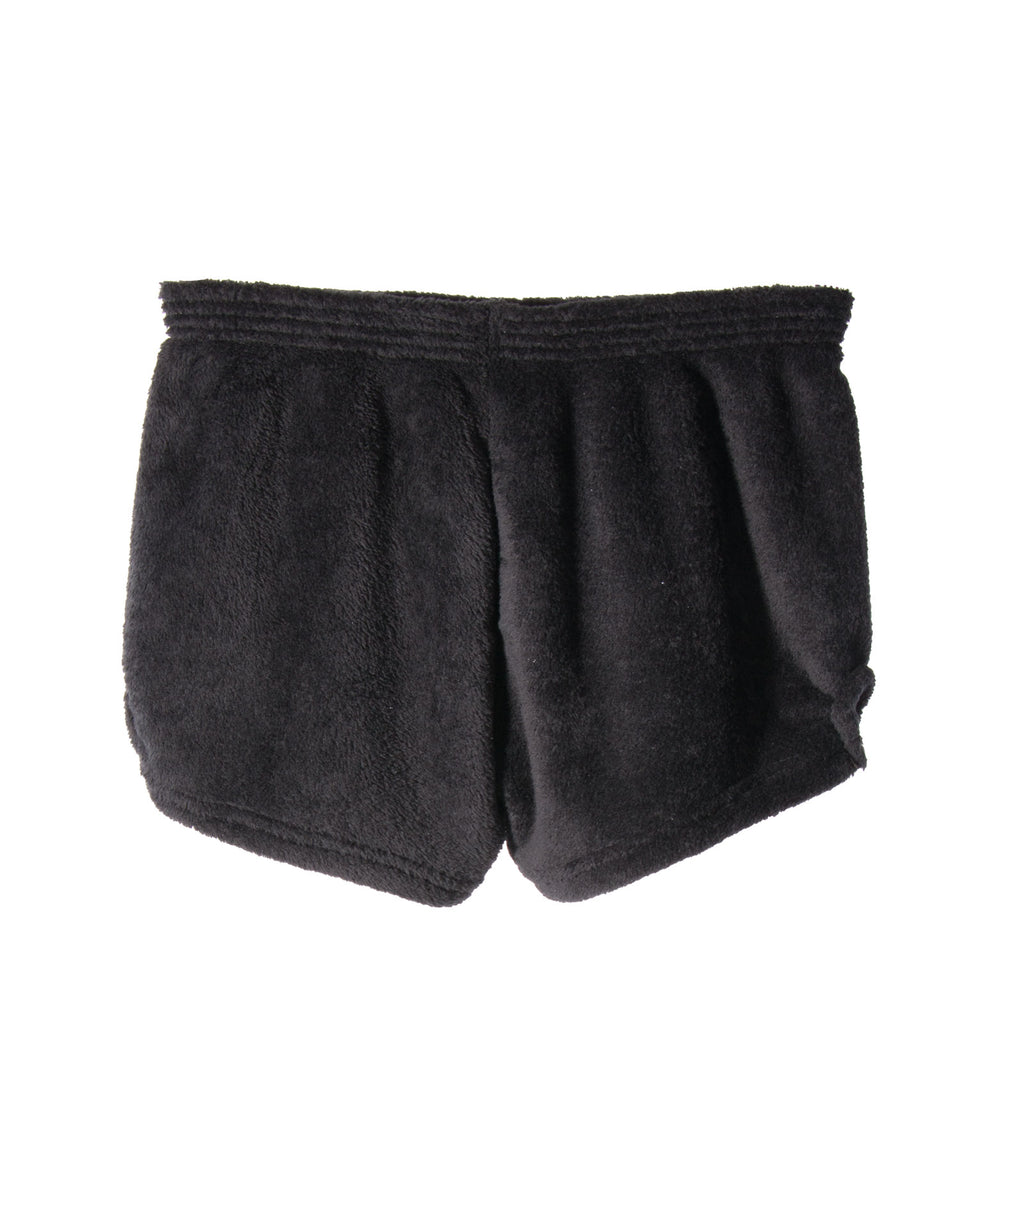 Made with Love and Kisses Girl Dance Black Shorts